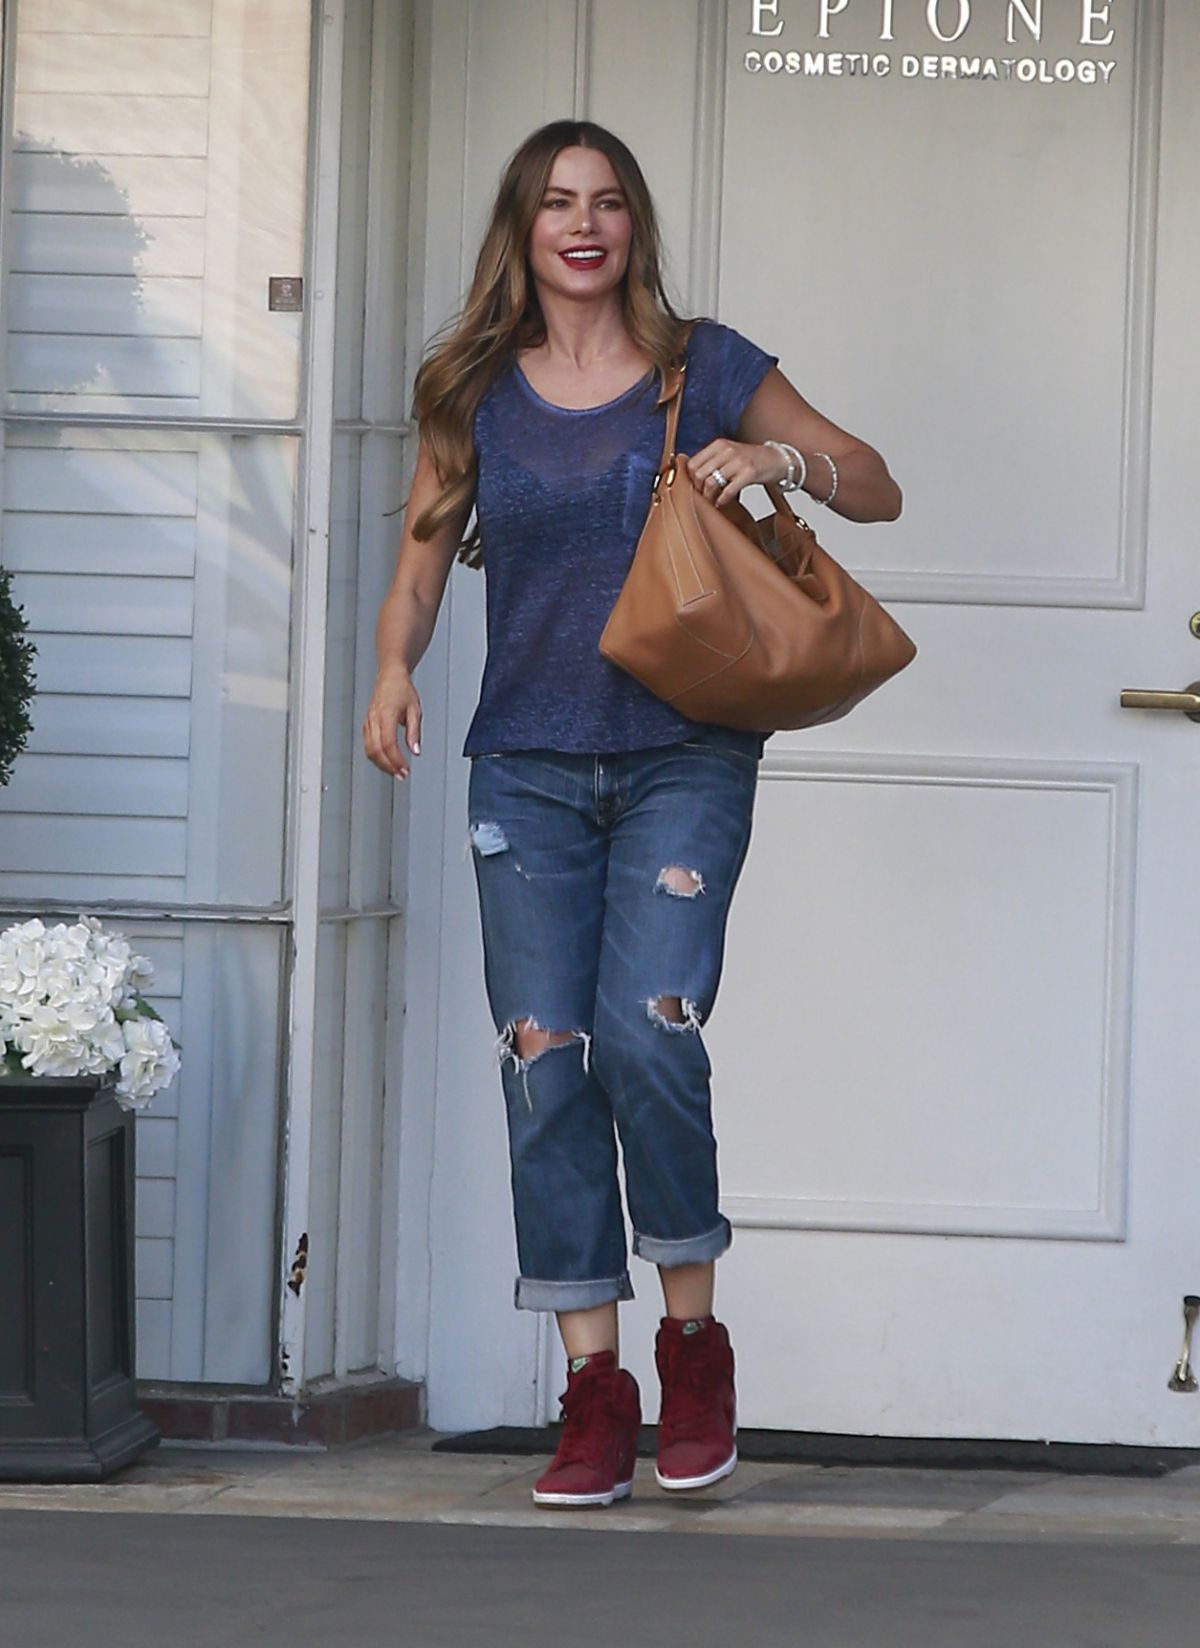 sofia-vergara-leaves-epione-cosmetic-clinic-in-los-angeles